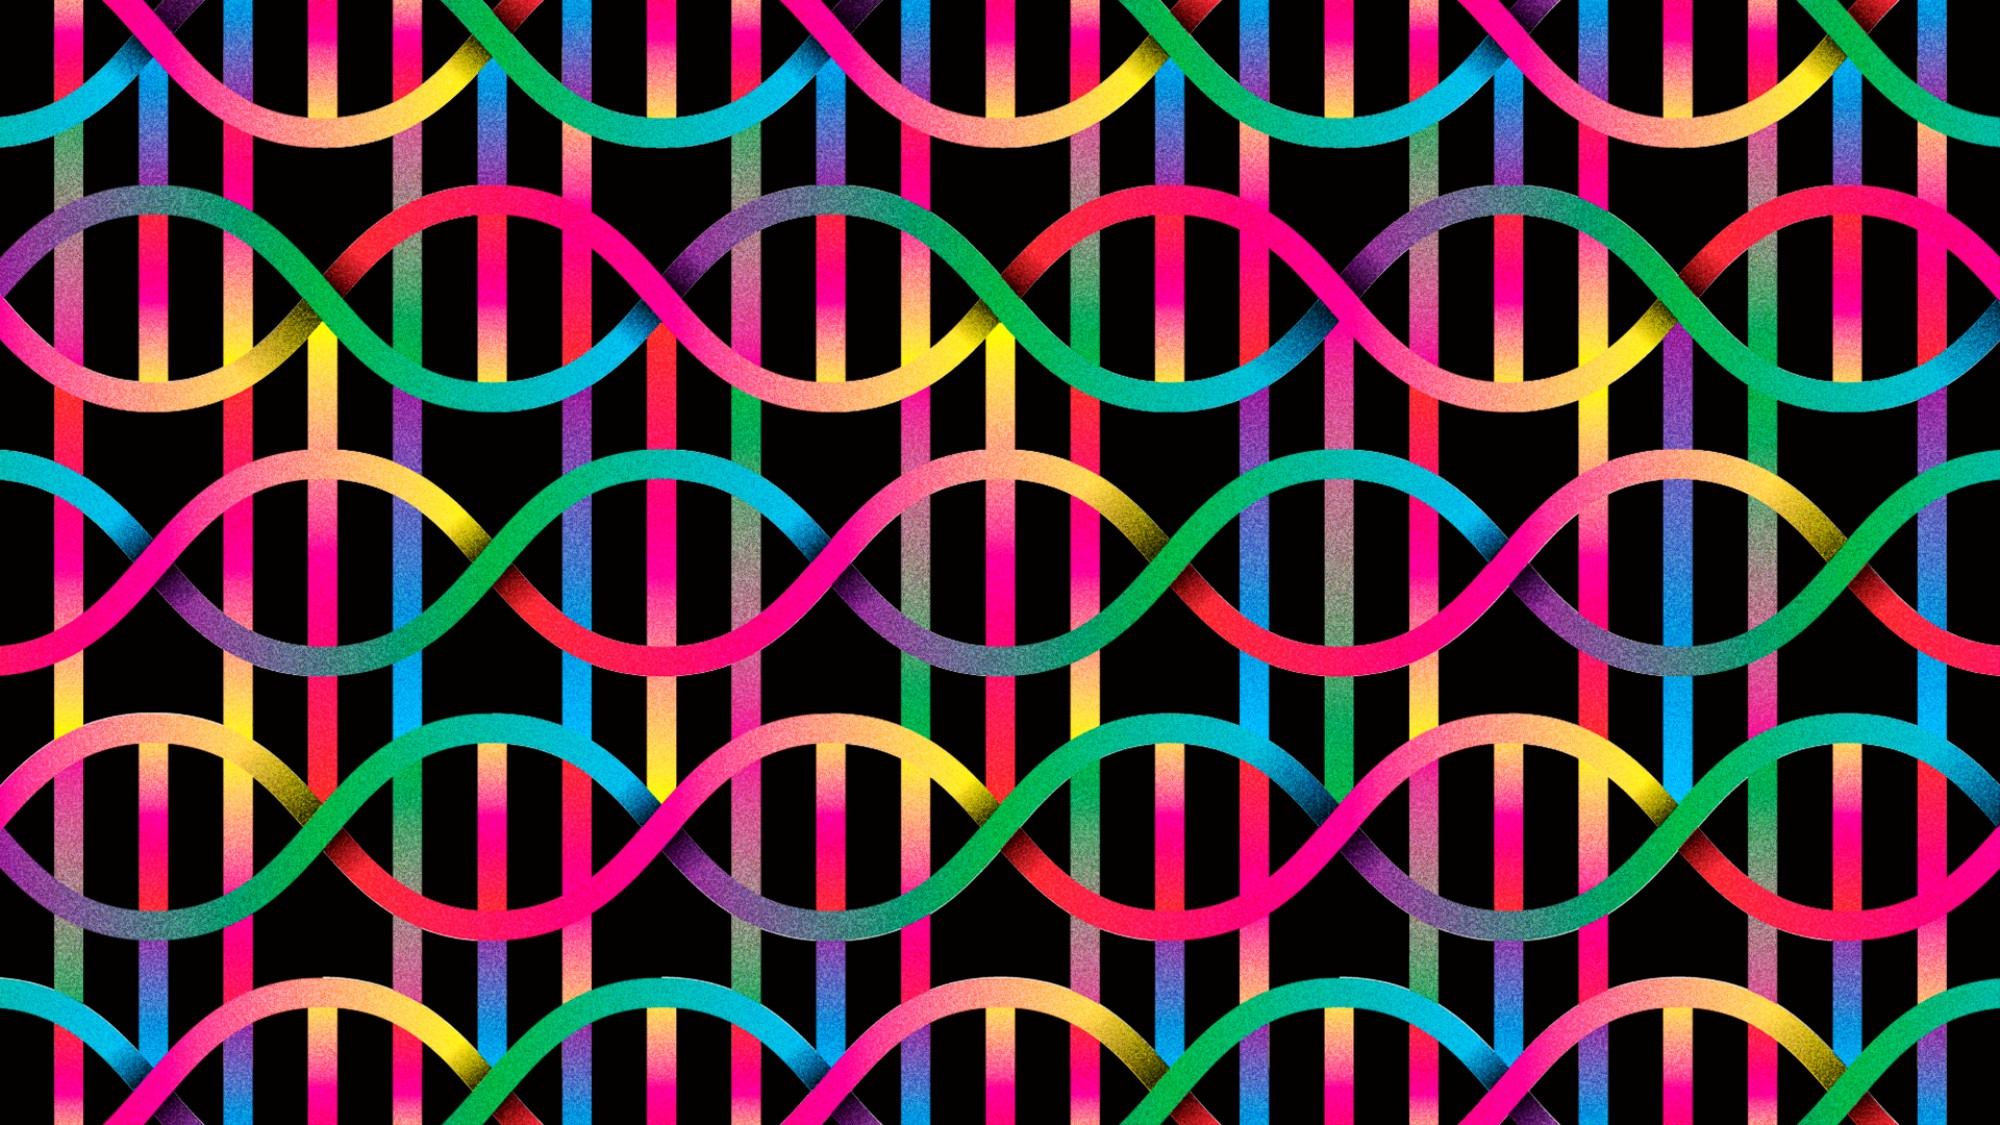 DNA Damage from CRISPR Has Been 'Seriously Underestimated